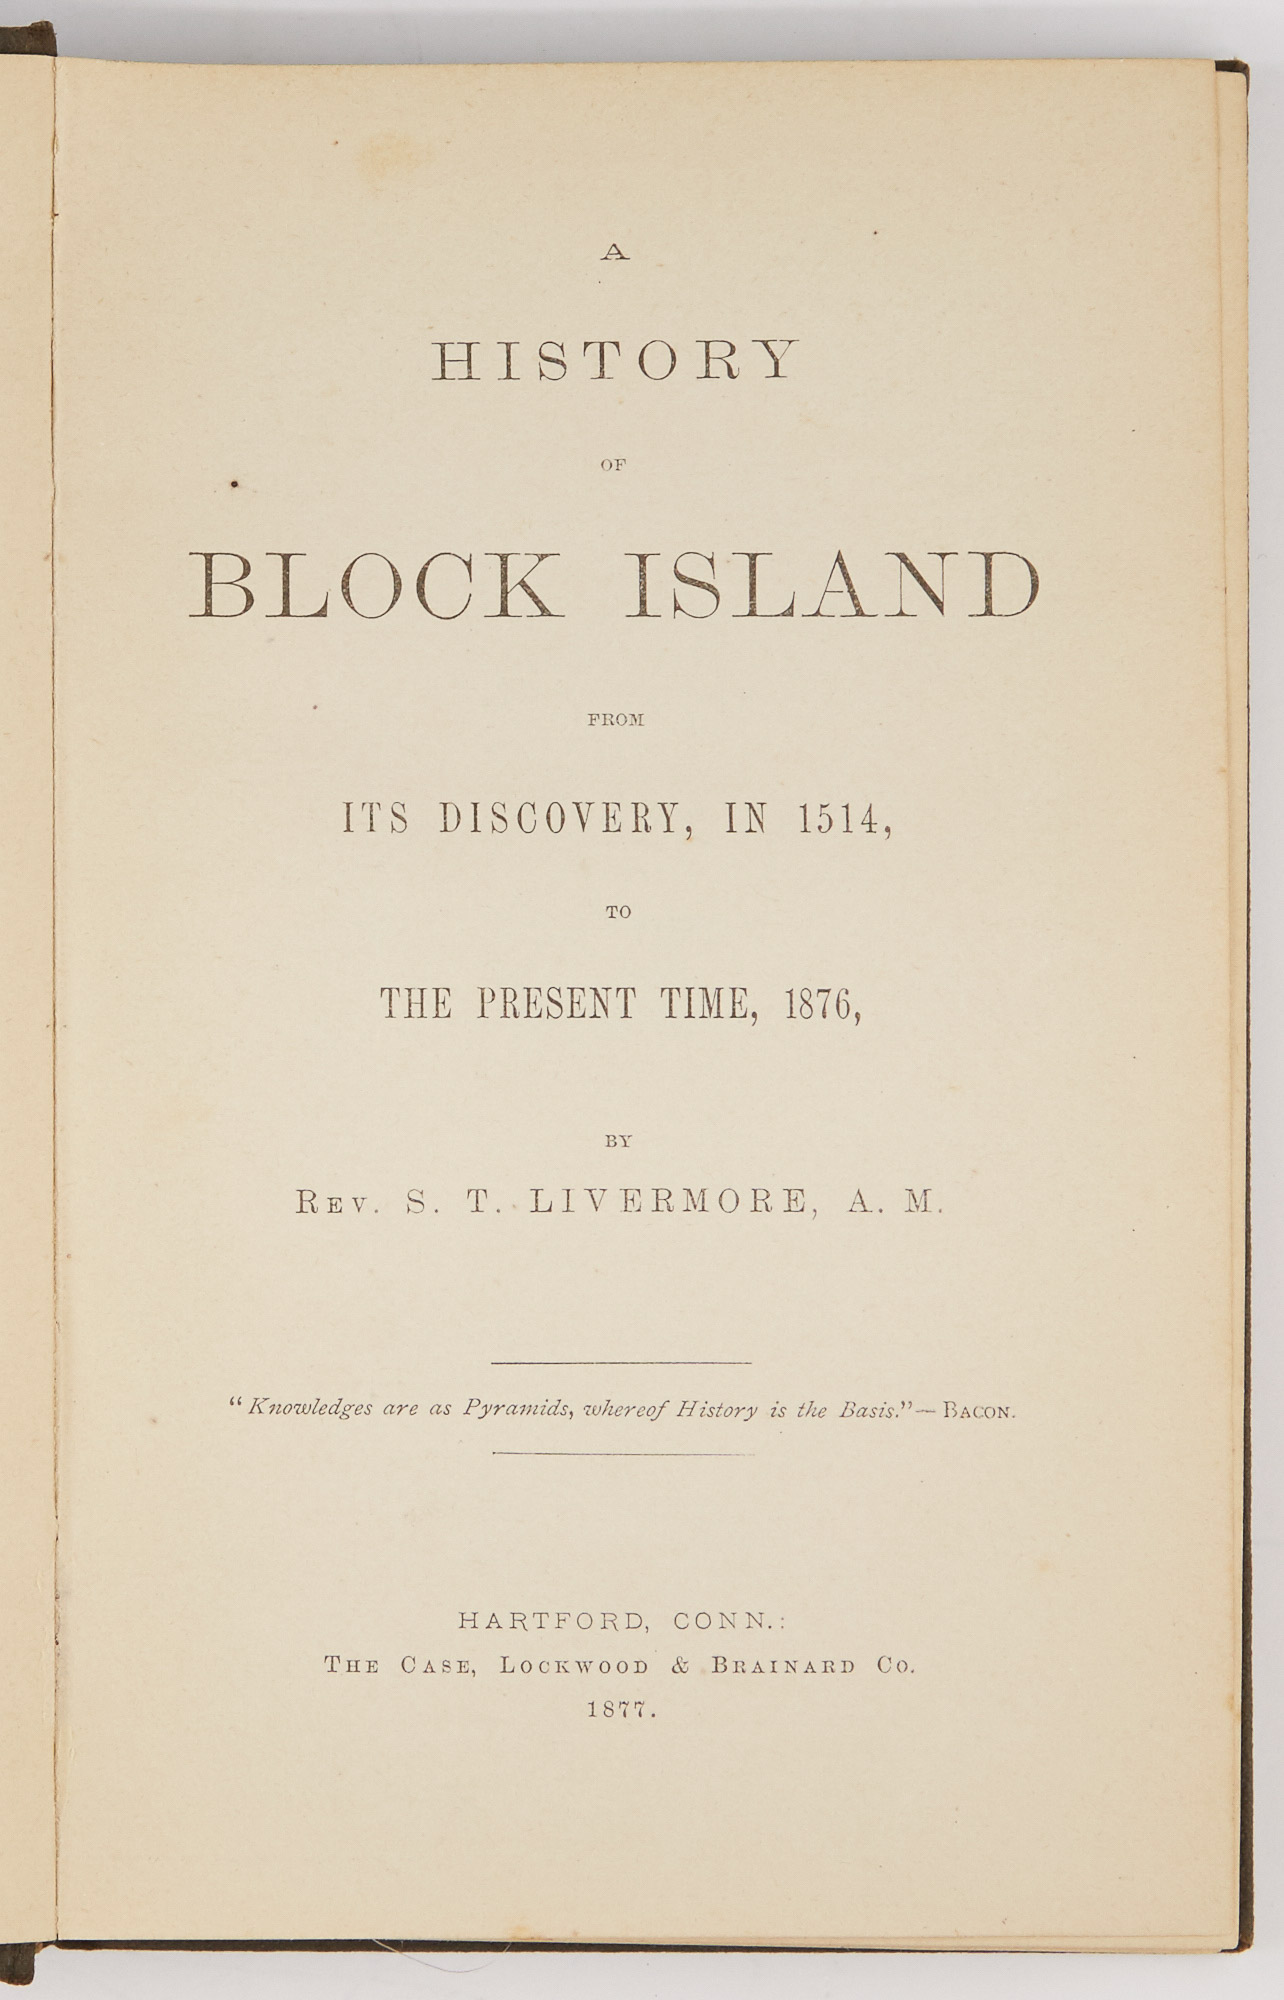 Lot image - [BLOCK ISLAND]  LIVERMORE, S. T. A History of Block Island from its Discovery, in 1514, to the Present Time, 1876.